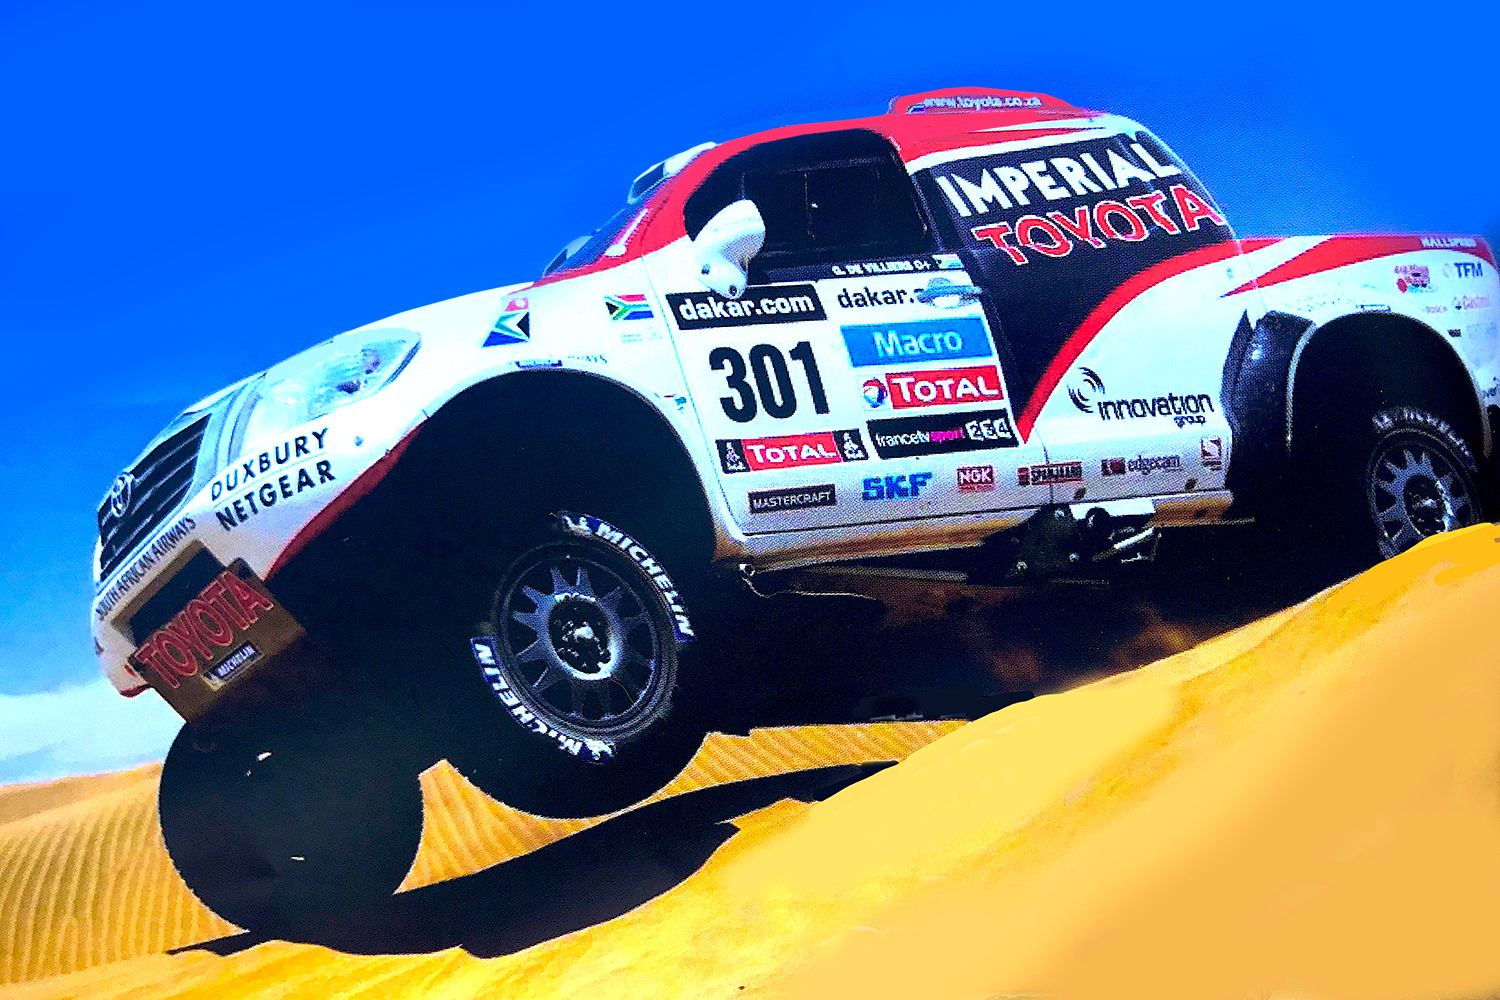 HILUX TO DAKAR – DOMINANT SA TEAM CHASES THE DREAM